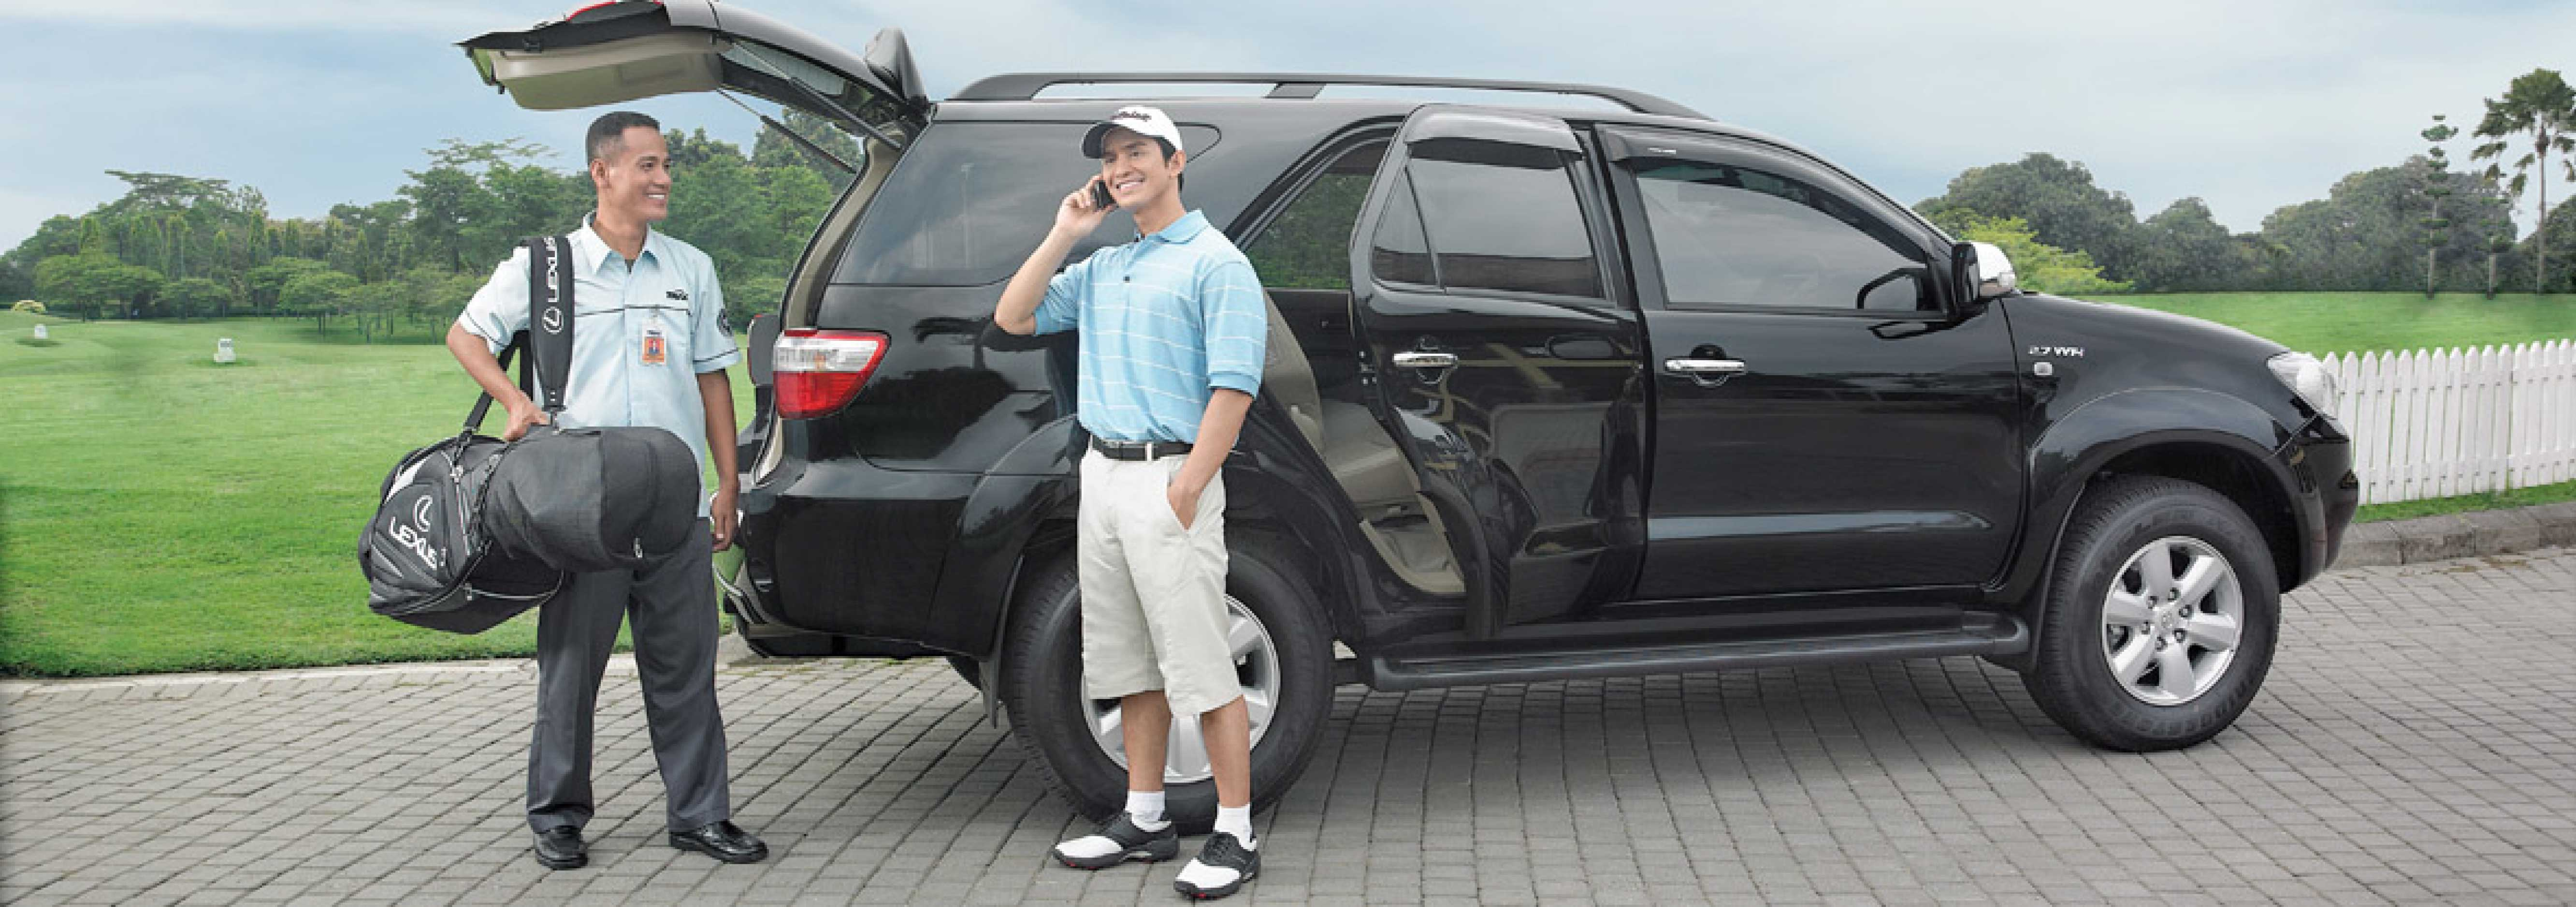 car rental services with driver